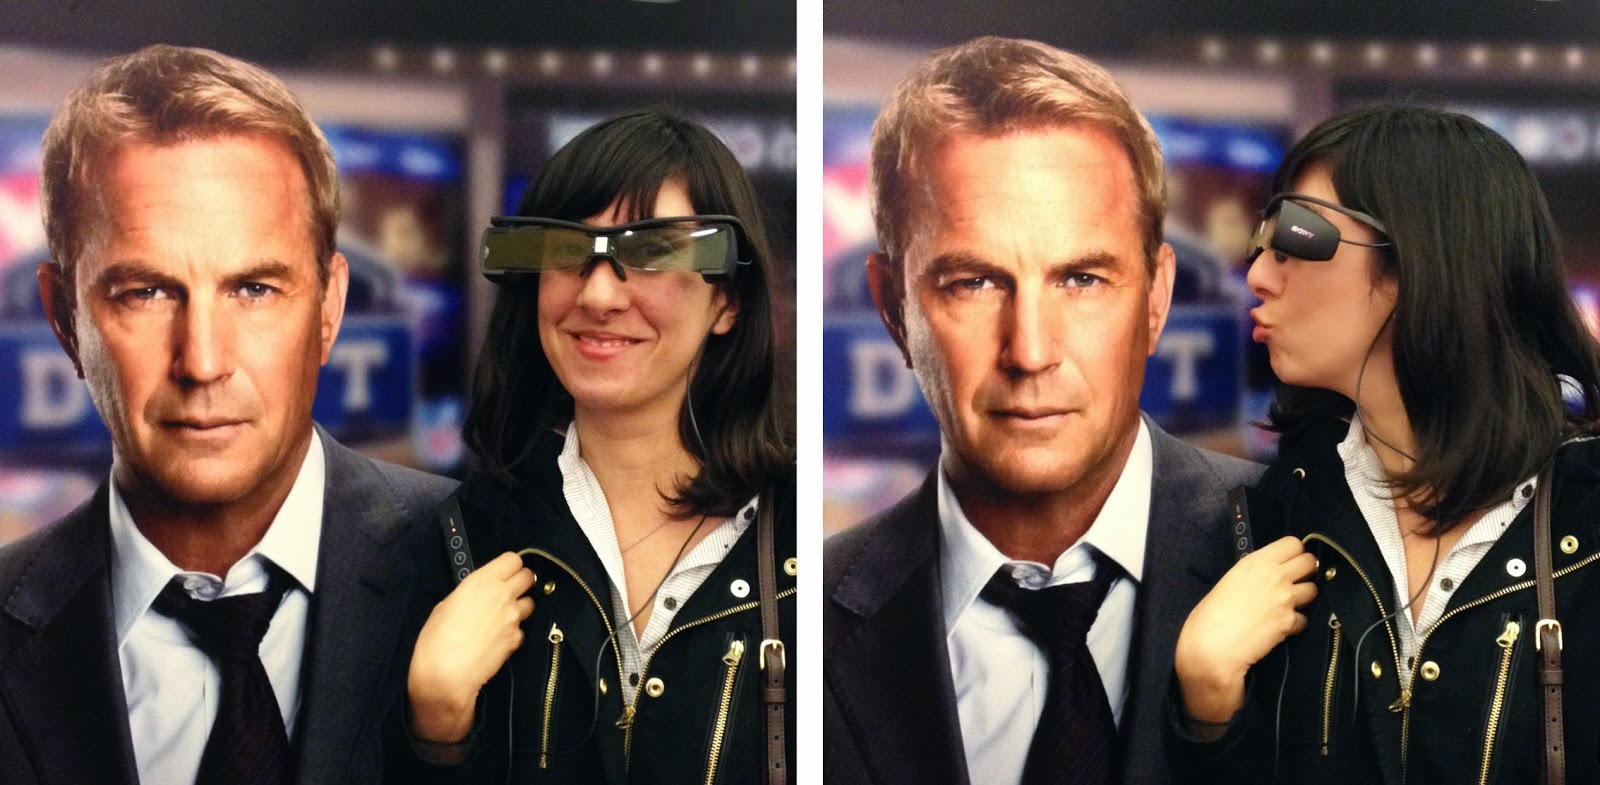 My Date with Captain America (and Kevin Costner) in Closed Captioning Glasses